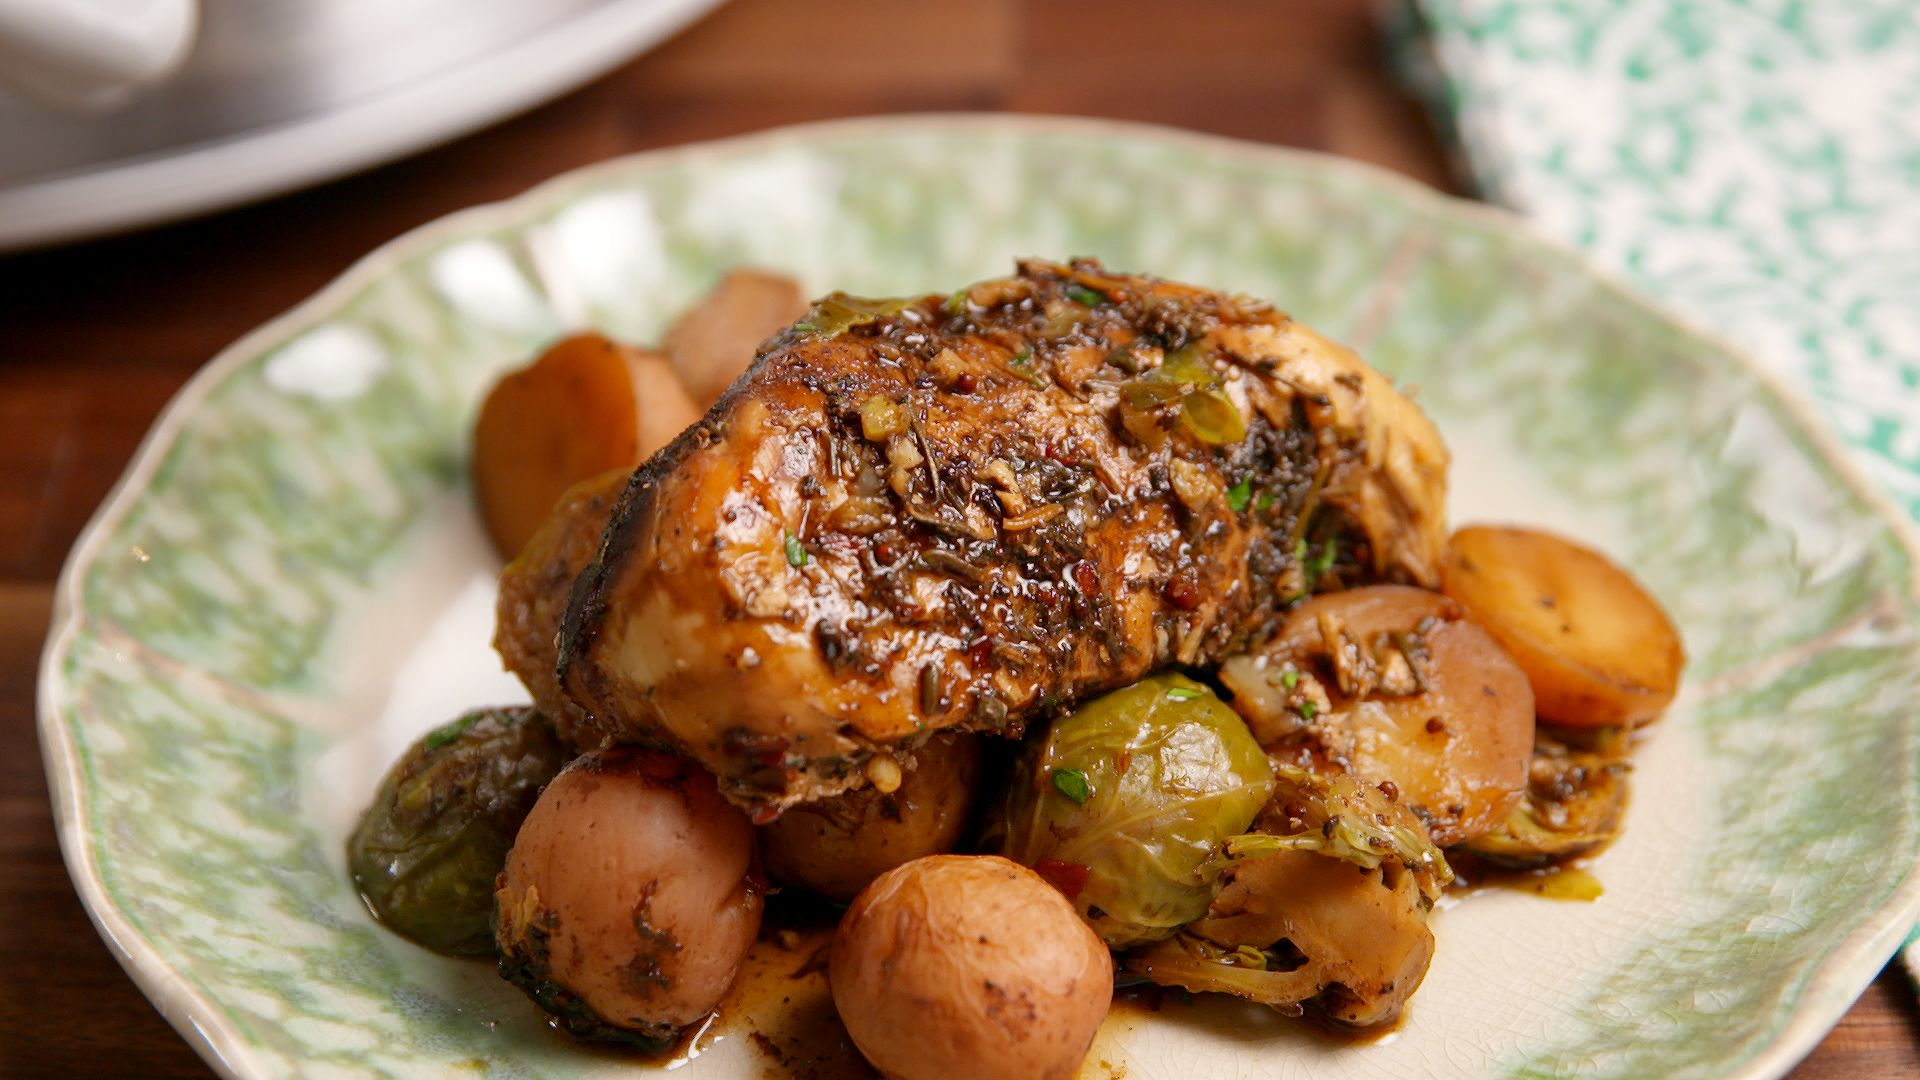 Forum on this topic: Balsamic Chicken with Thyme, balsamic-chicken-with-thyme/